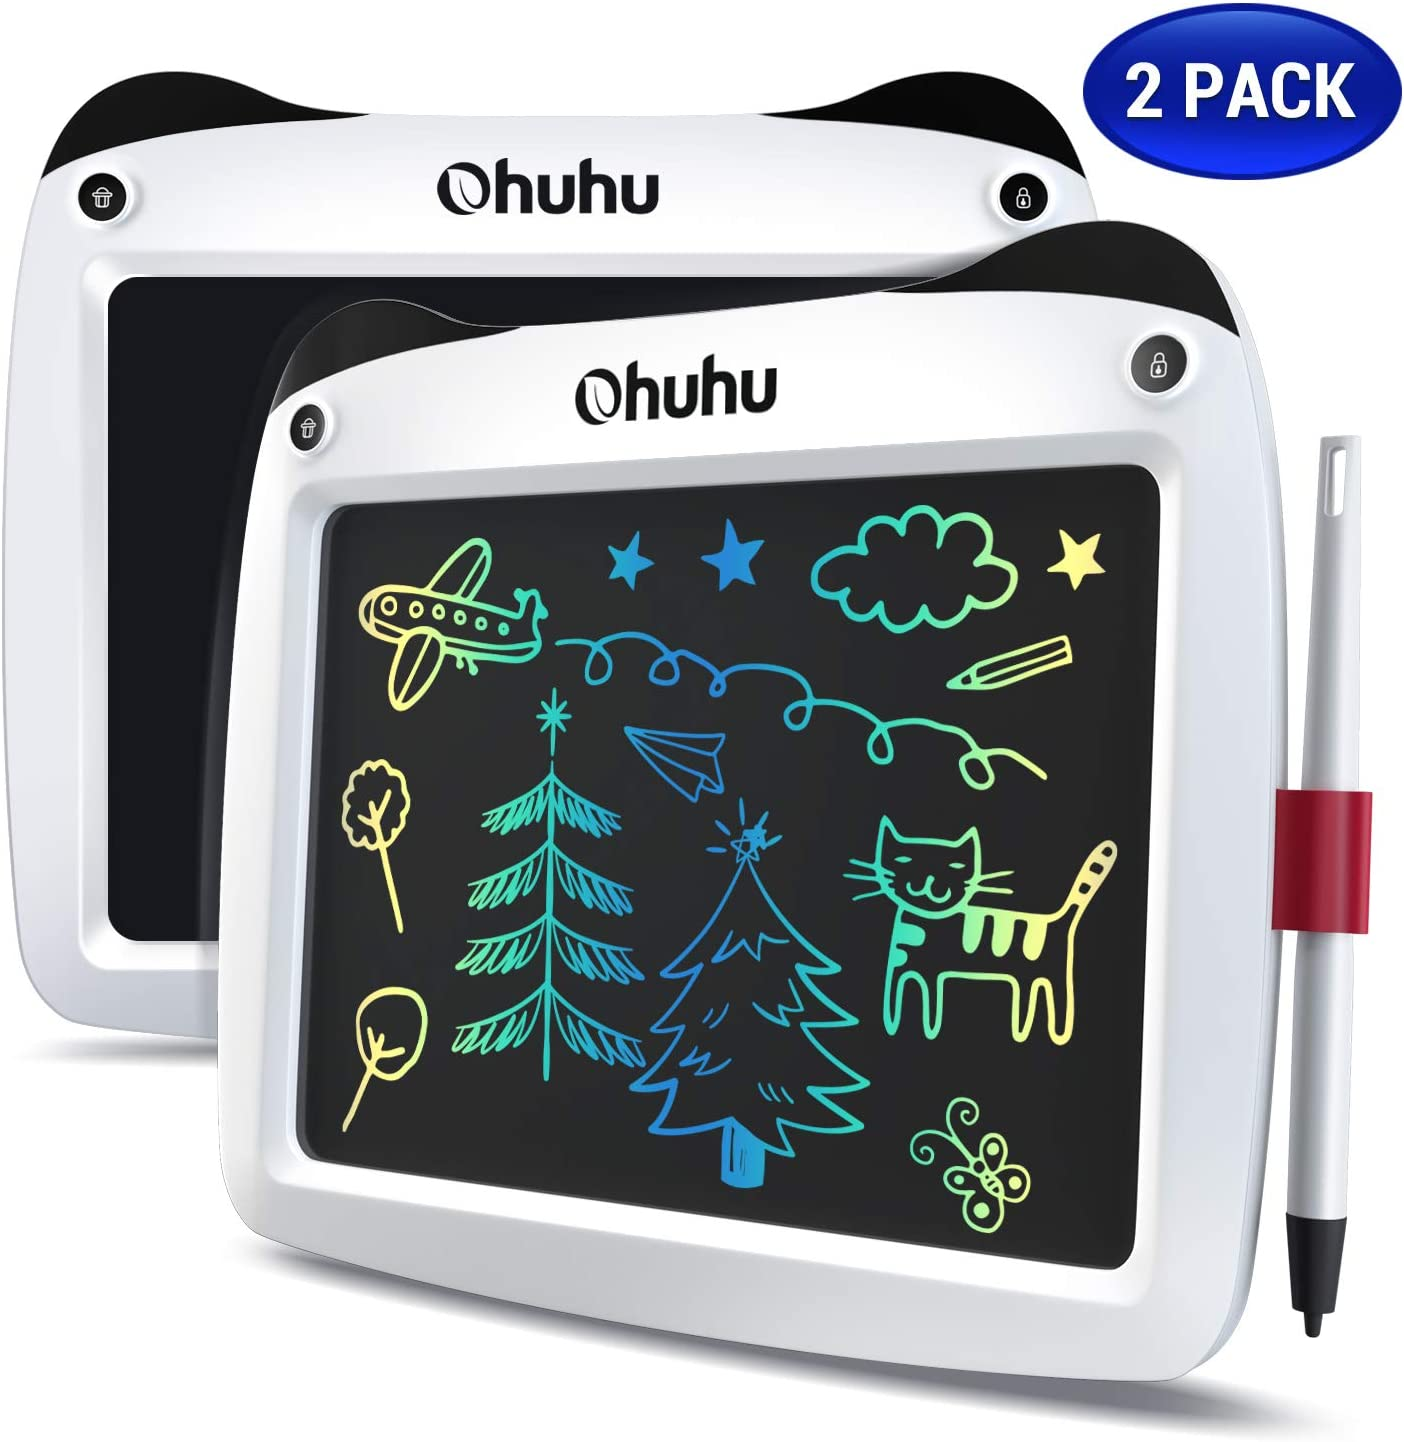 "LCD Writing Tablet Colorful Screen, Ohuhu 2 Pack 9"" Electronic Drawing Doodle Board, LCD Digital Handwriting Pad Gifts for Kids Children at Home and School, Scribble and Play Learning Boards Ages 3+"